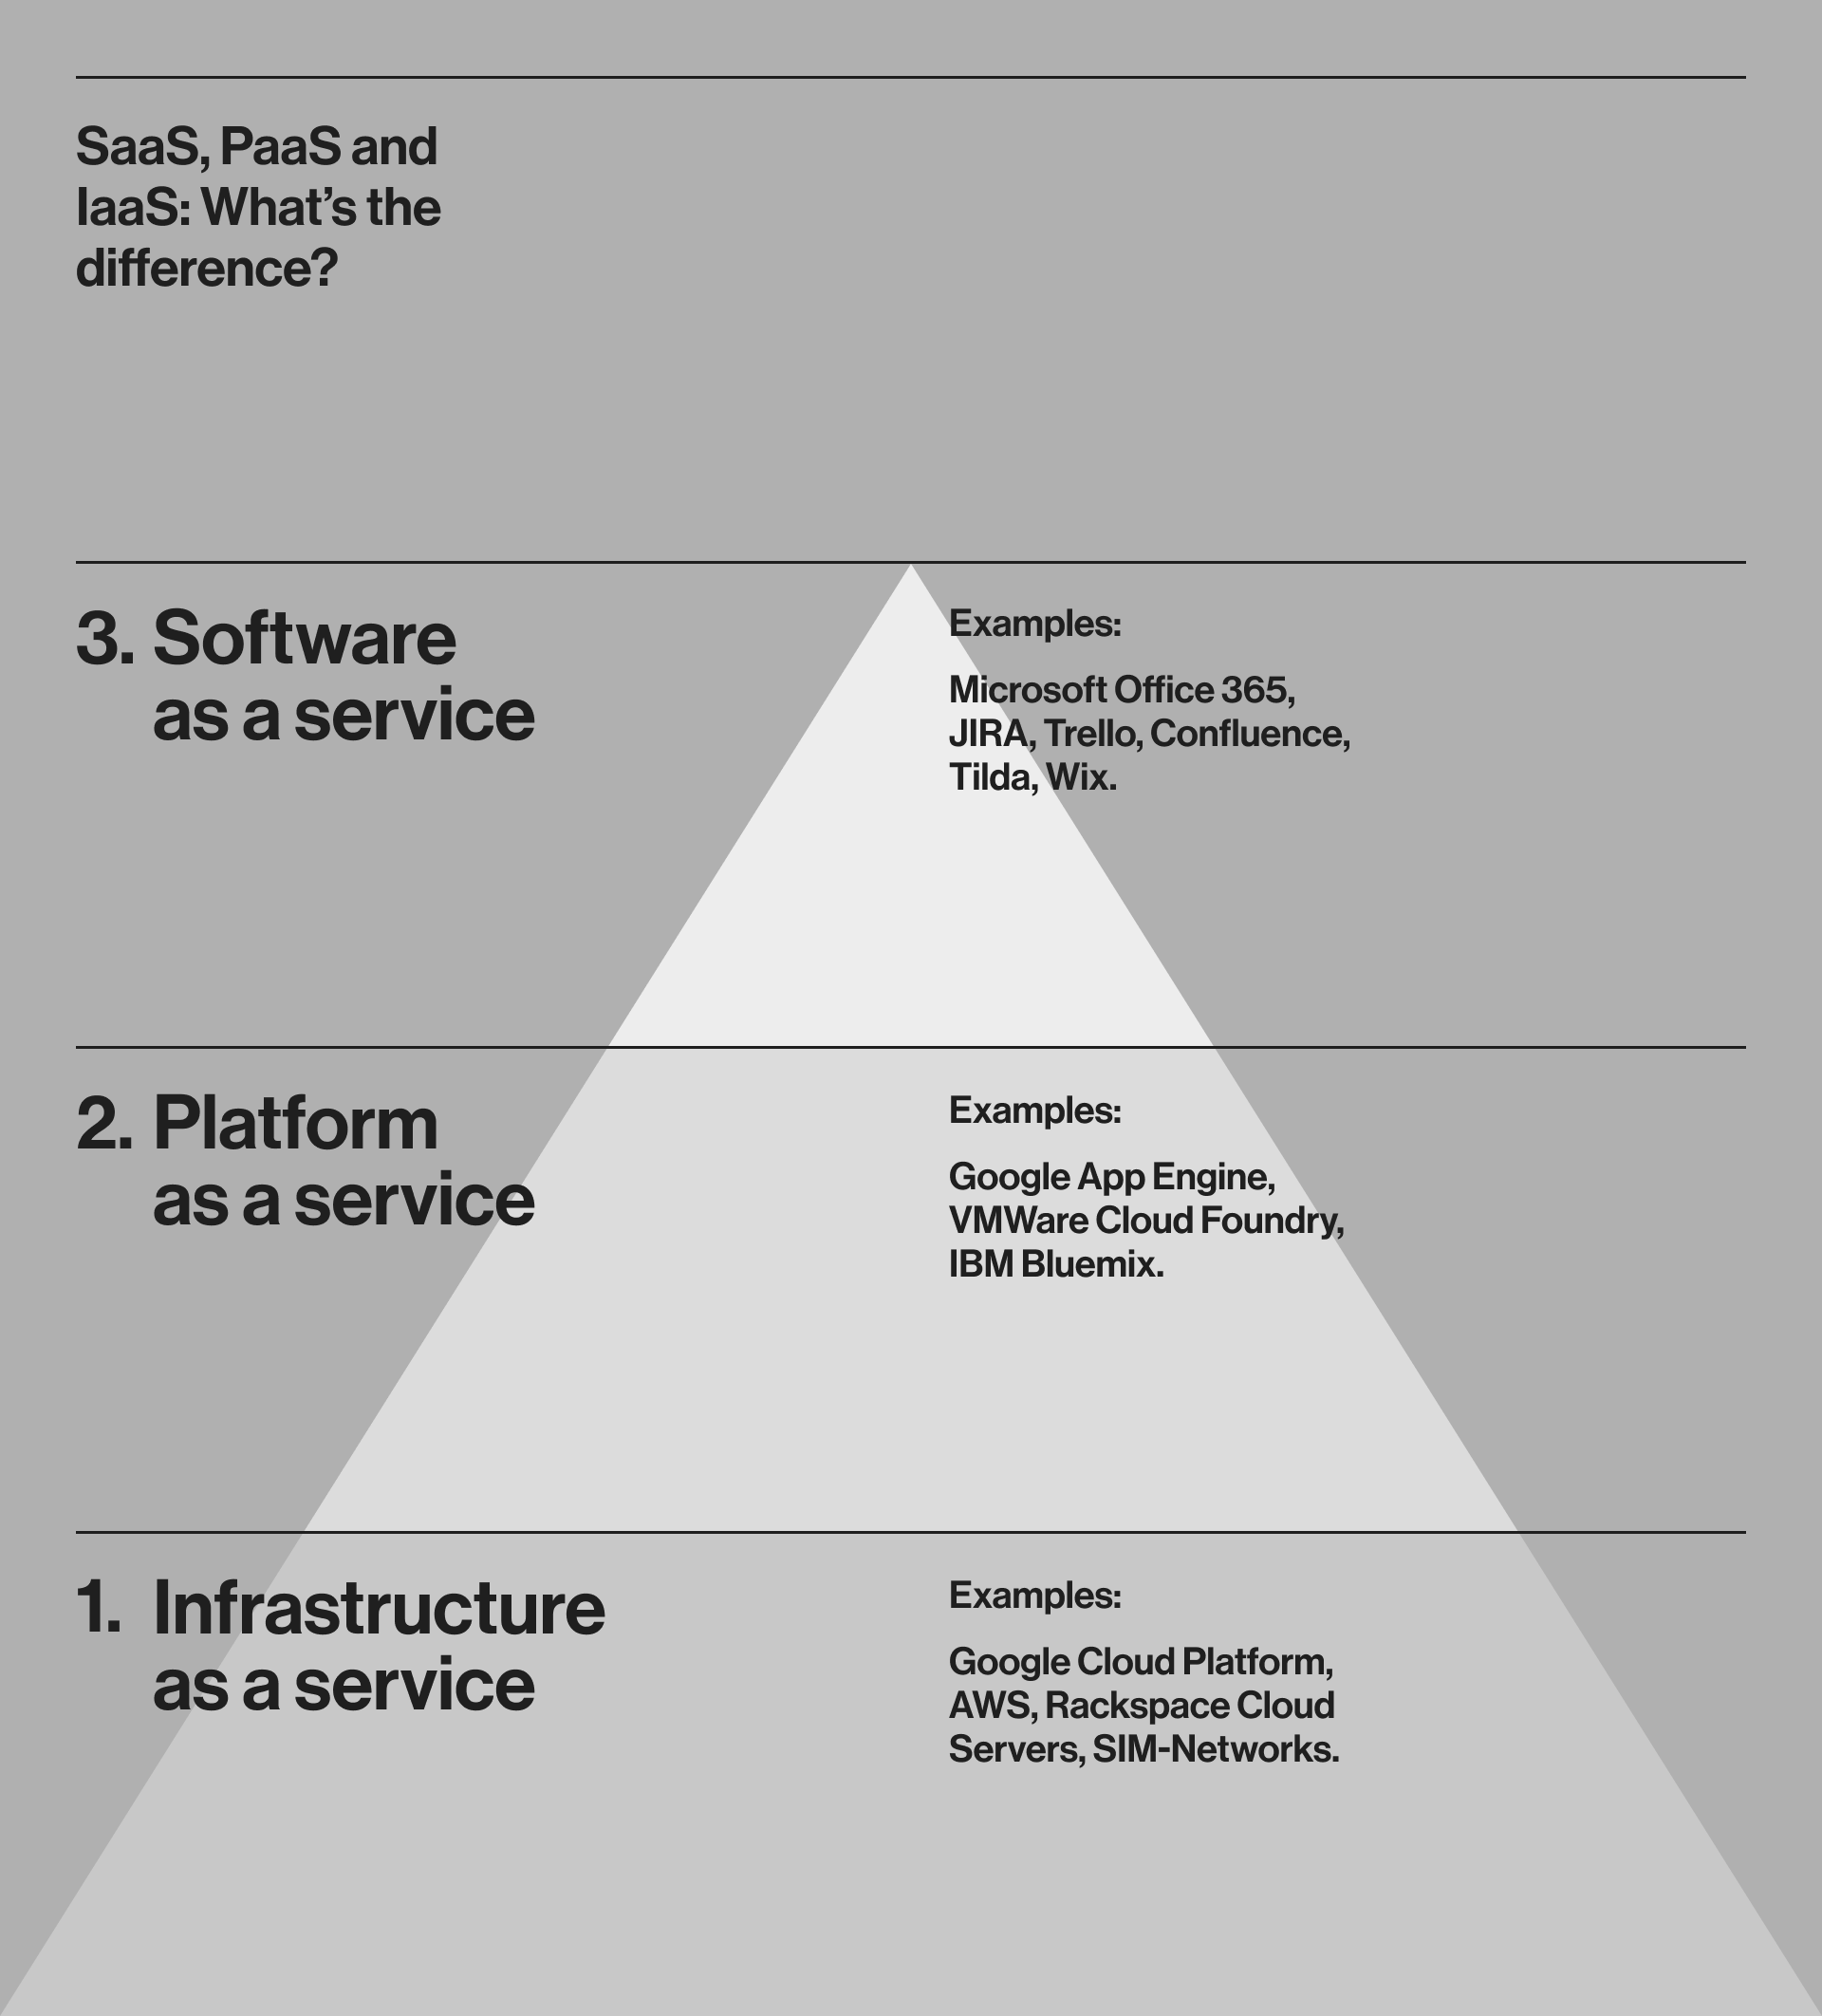 Difference of SaaS, PaaS and IaaS